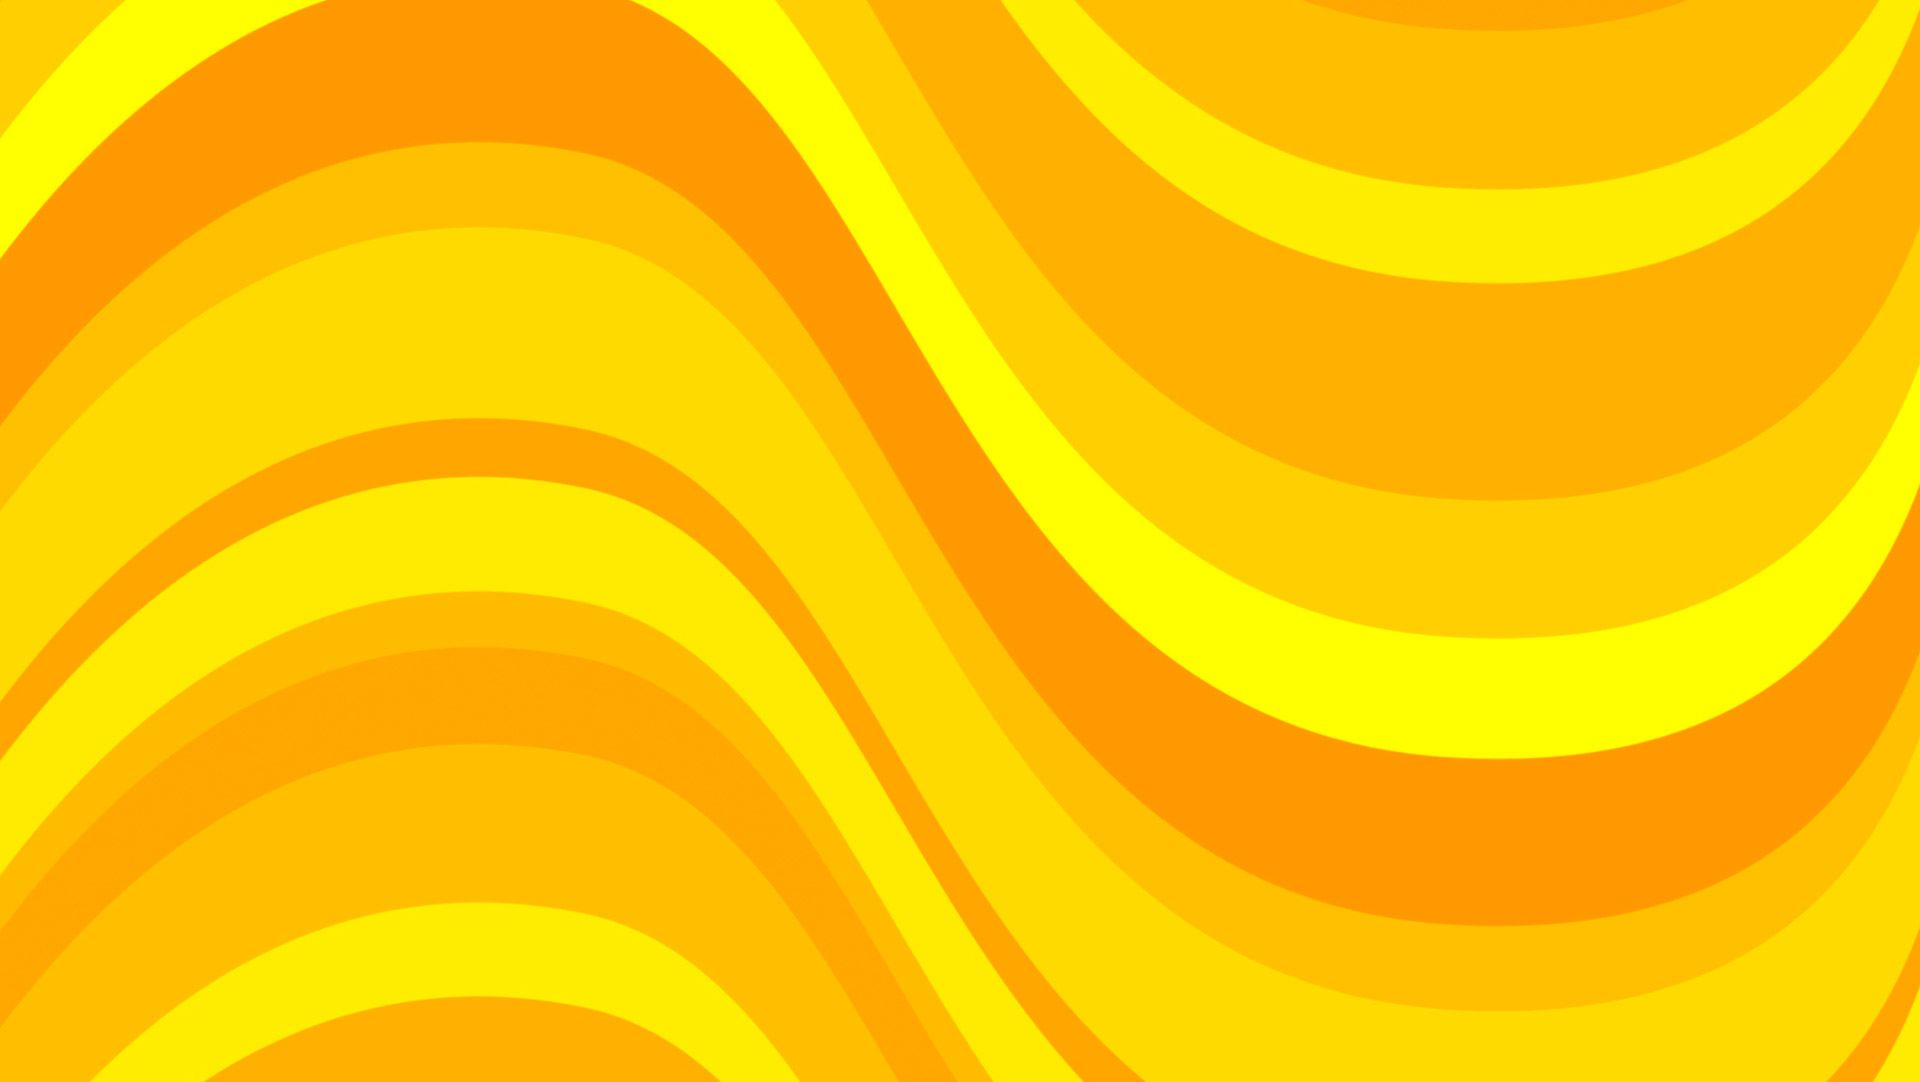 yellow background orange yellow background free stock